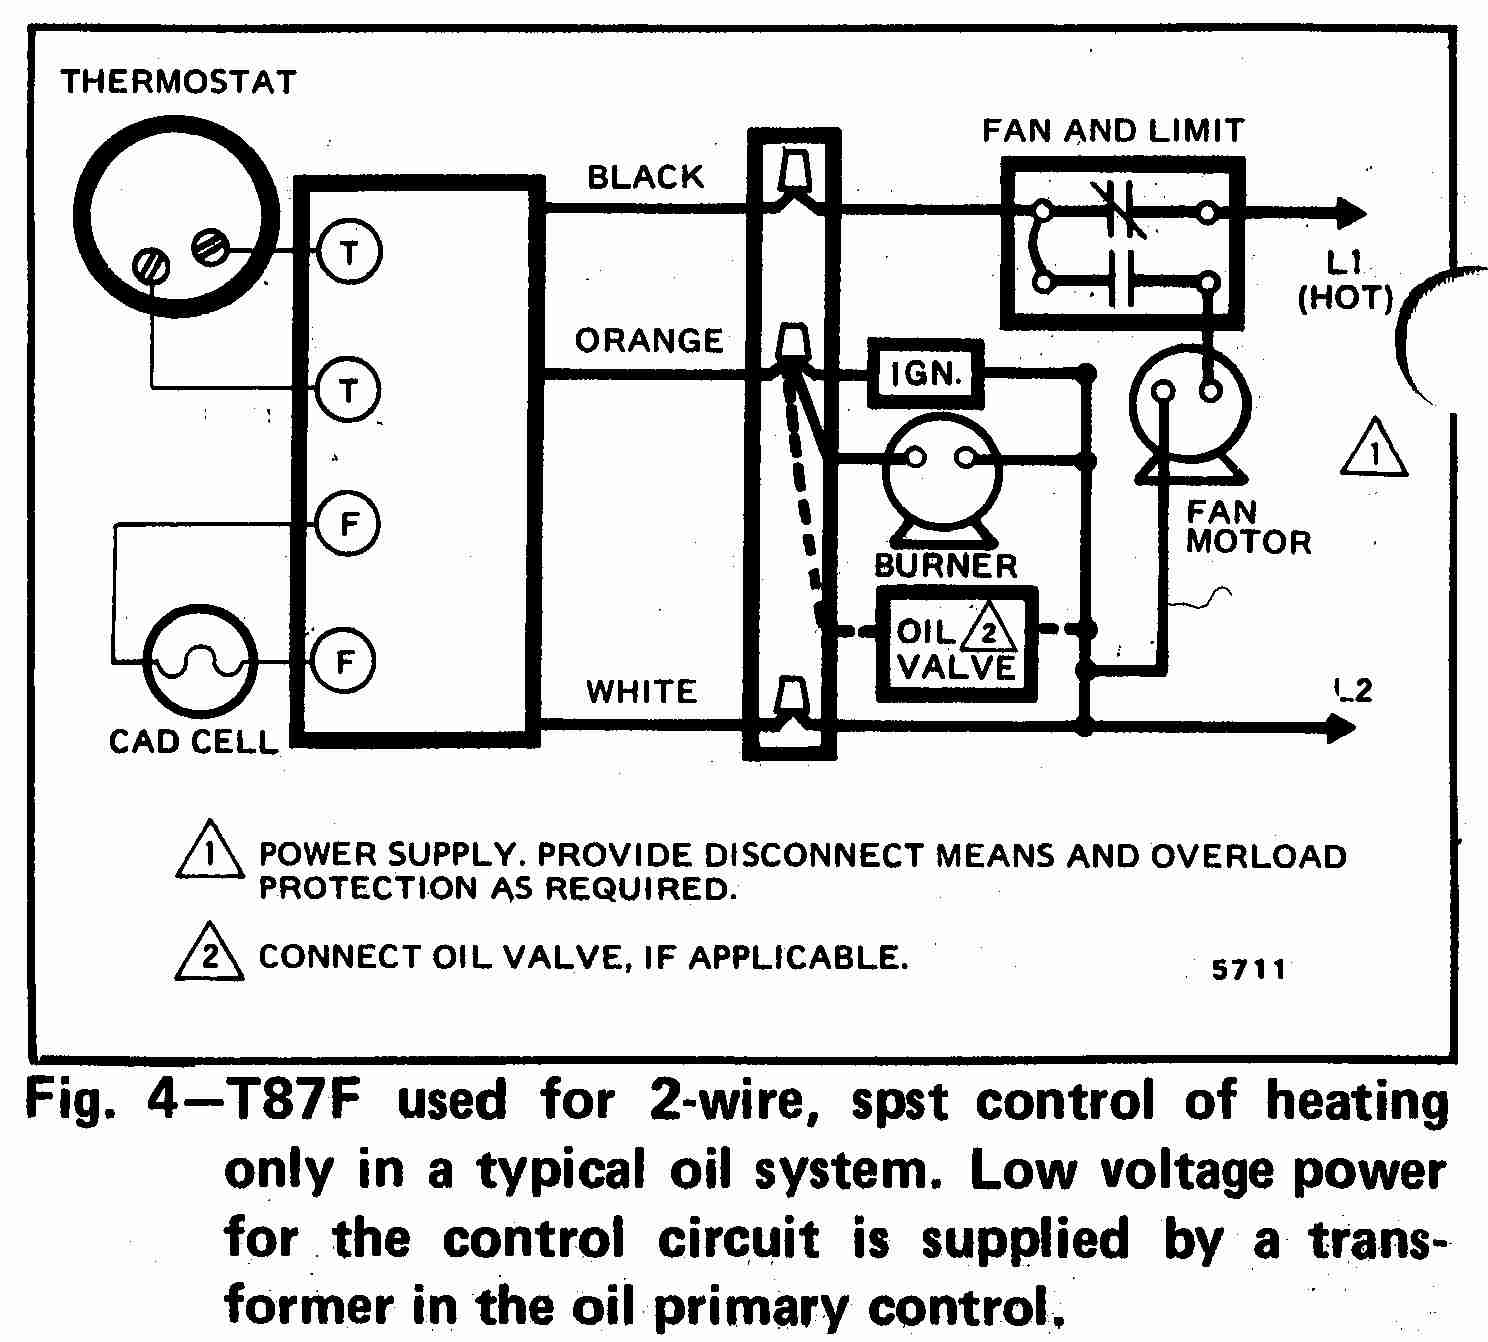 forced air furnace wiring diagram wiring diagrams rh katagiri co Gas Furnace Electrical Wiring residential furnace wiring diagram